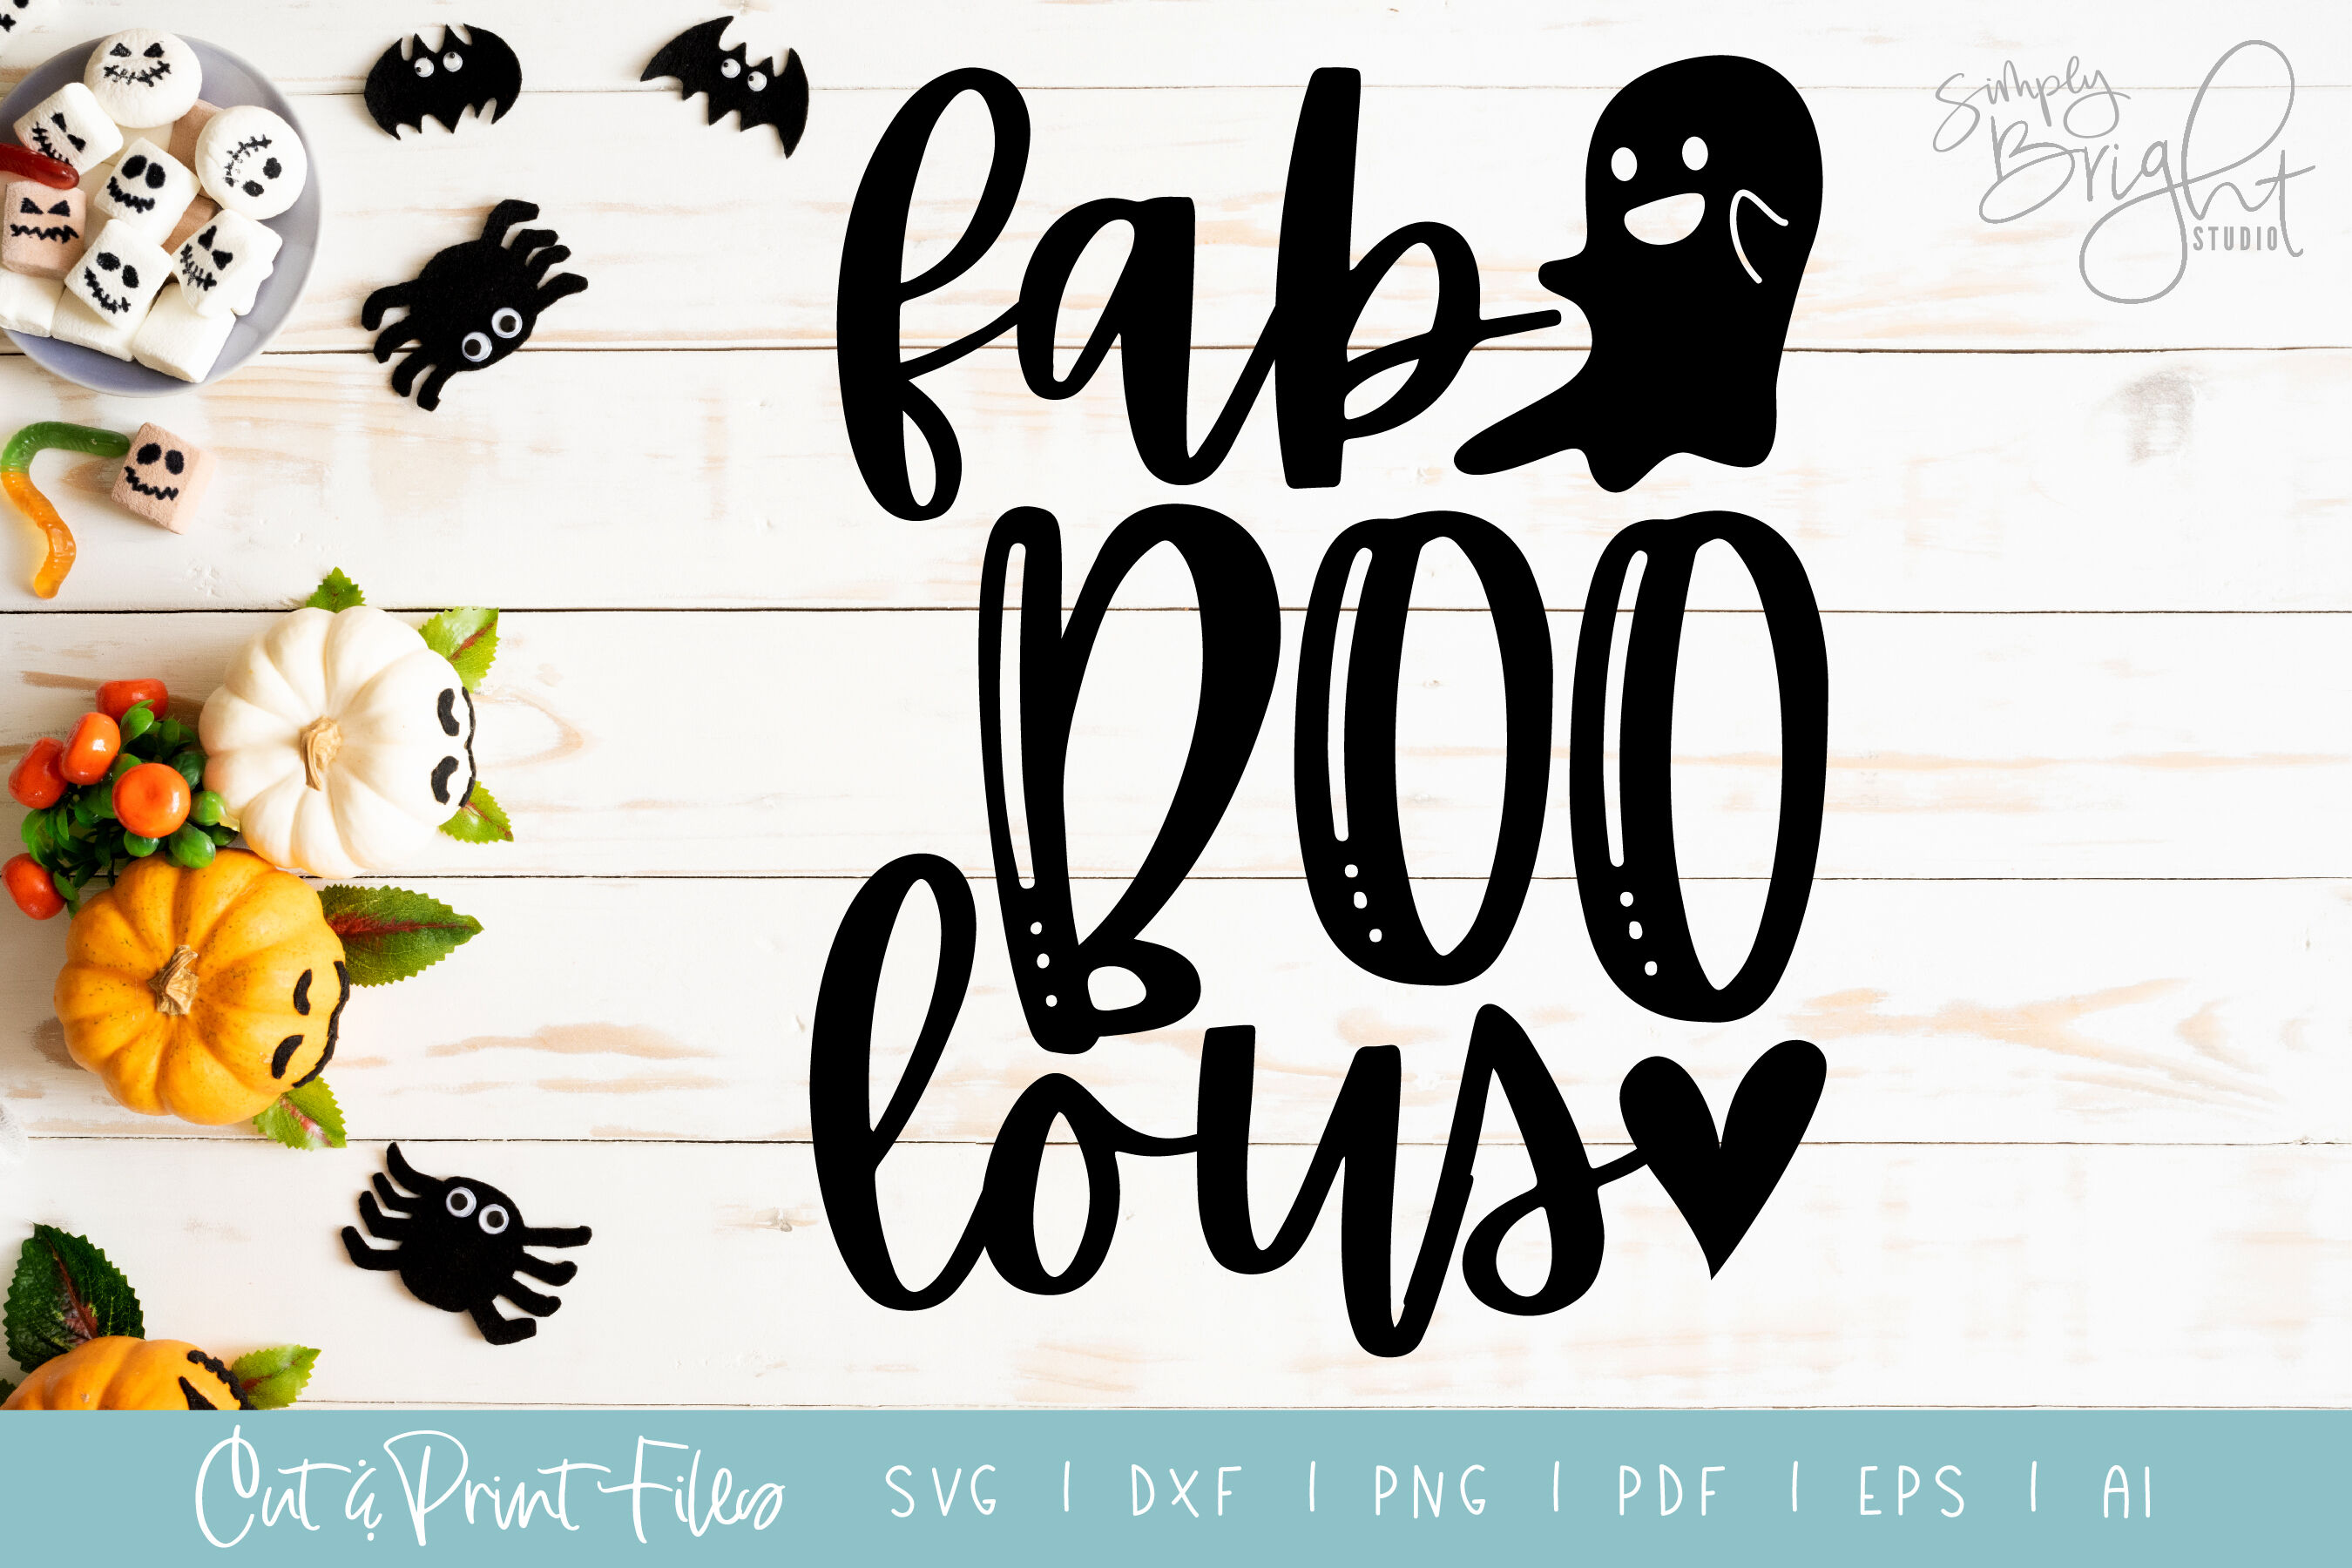 Fabboolous Dxf Svg Png Pdf Cut Print Files By Simply Bright Studio Thehungryjpeg Com